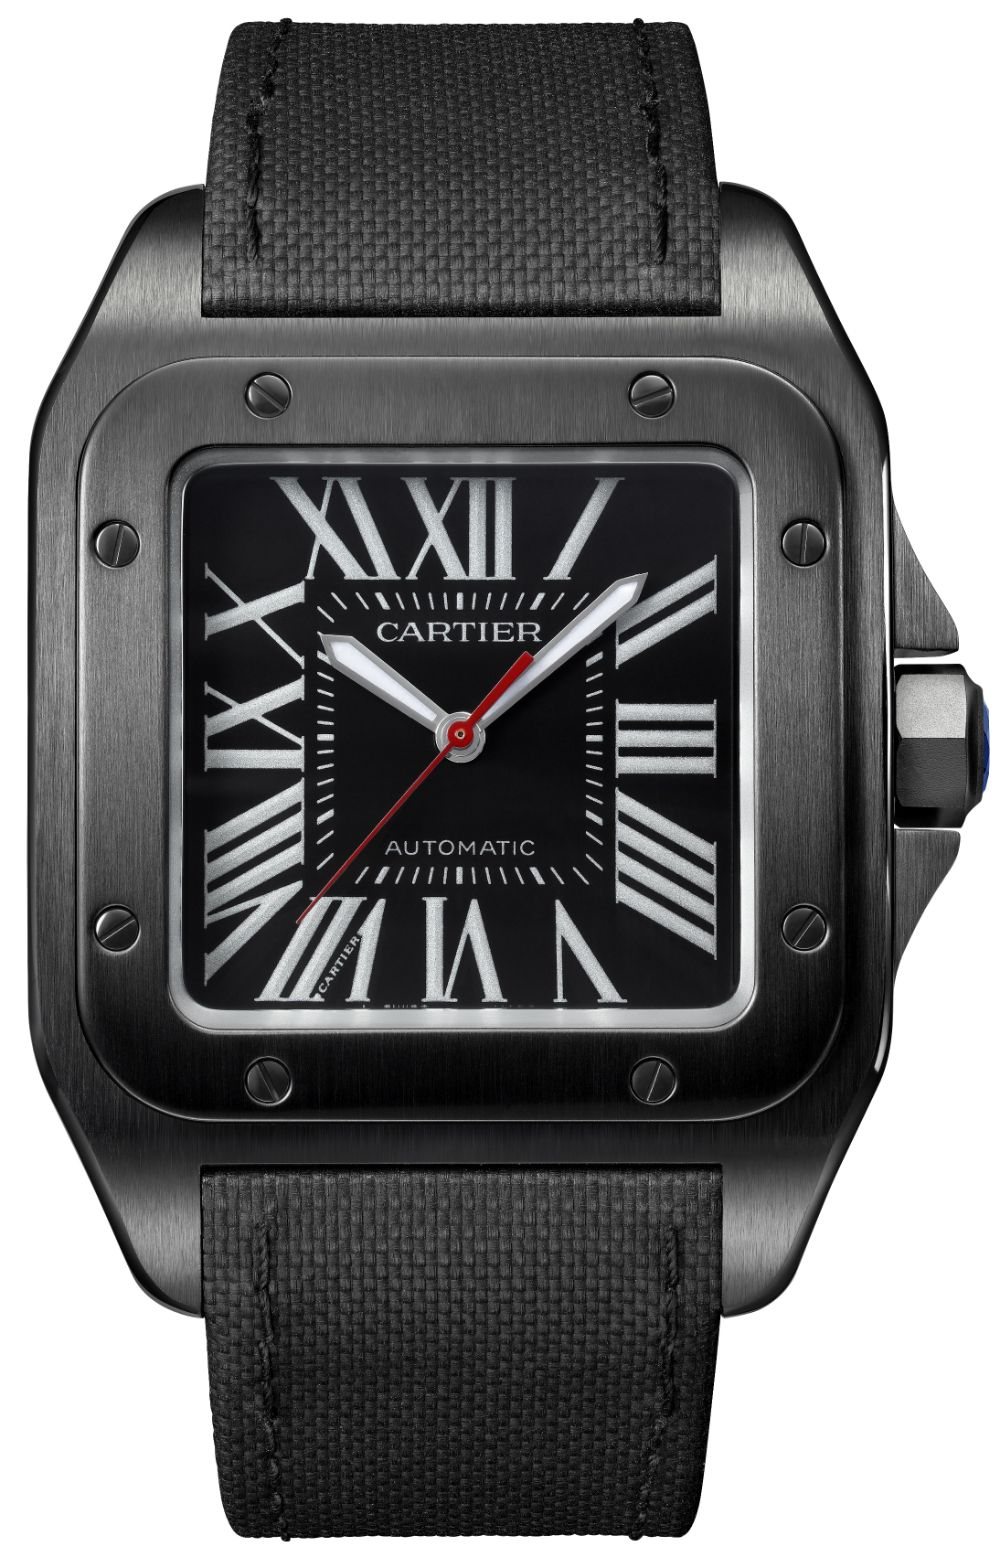 Cartier Santos 100 Carbon Ballon Bleu De Cartier Carbon Watches Ablogtowatch Cartier Santos Cartier Santos 100 Watches For Men